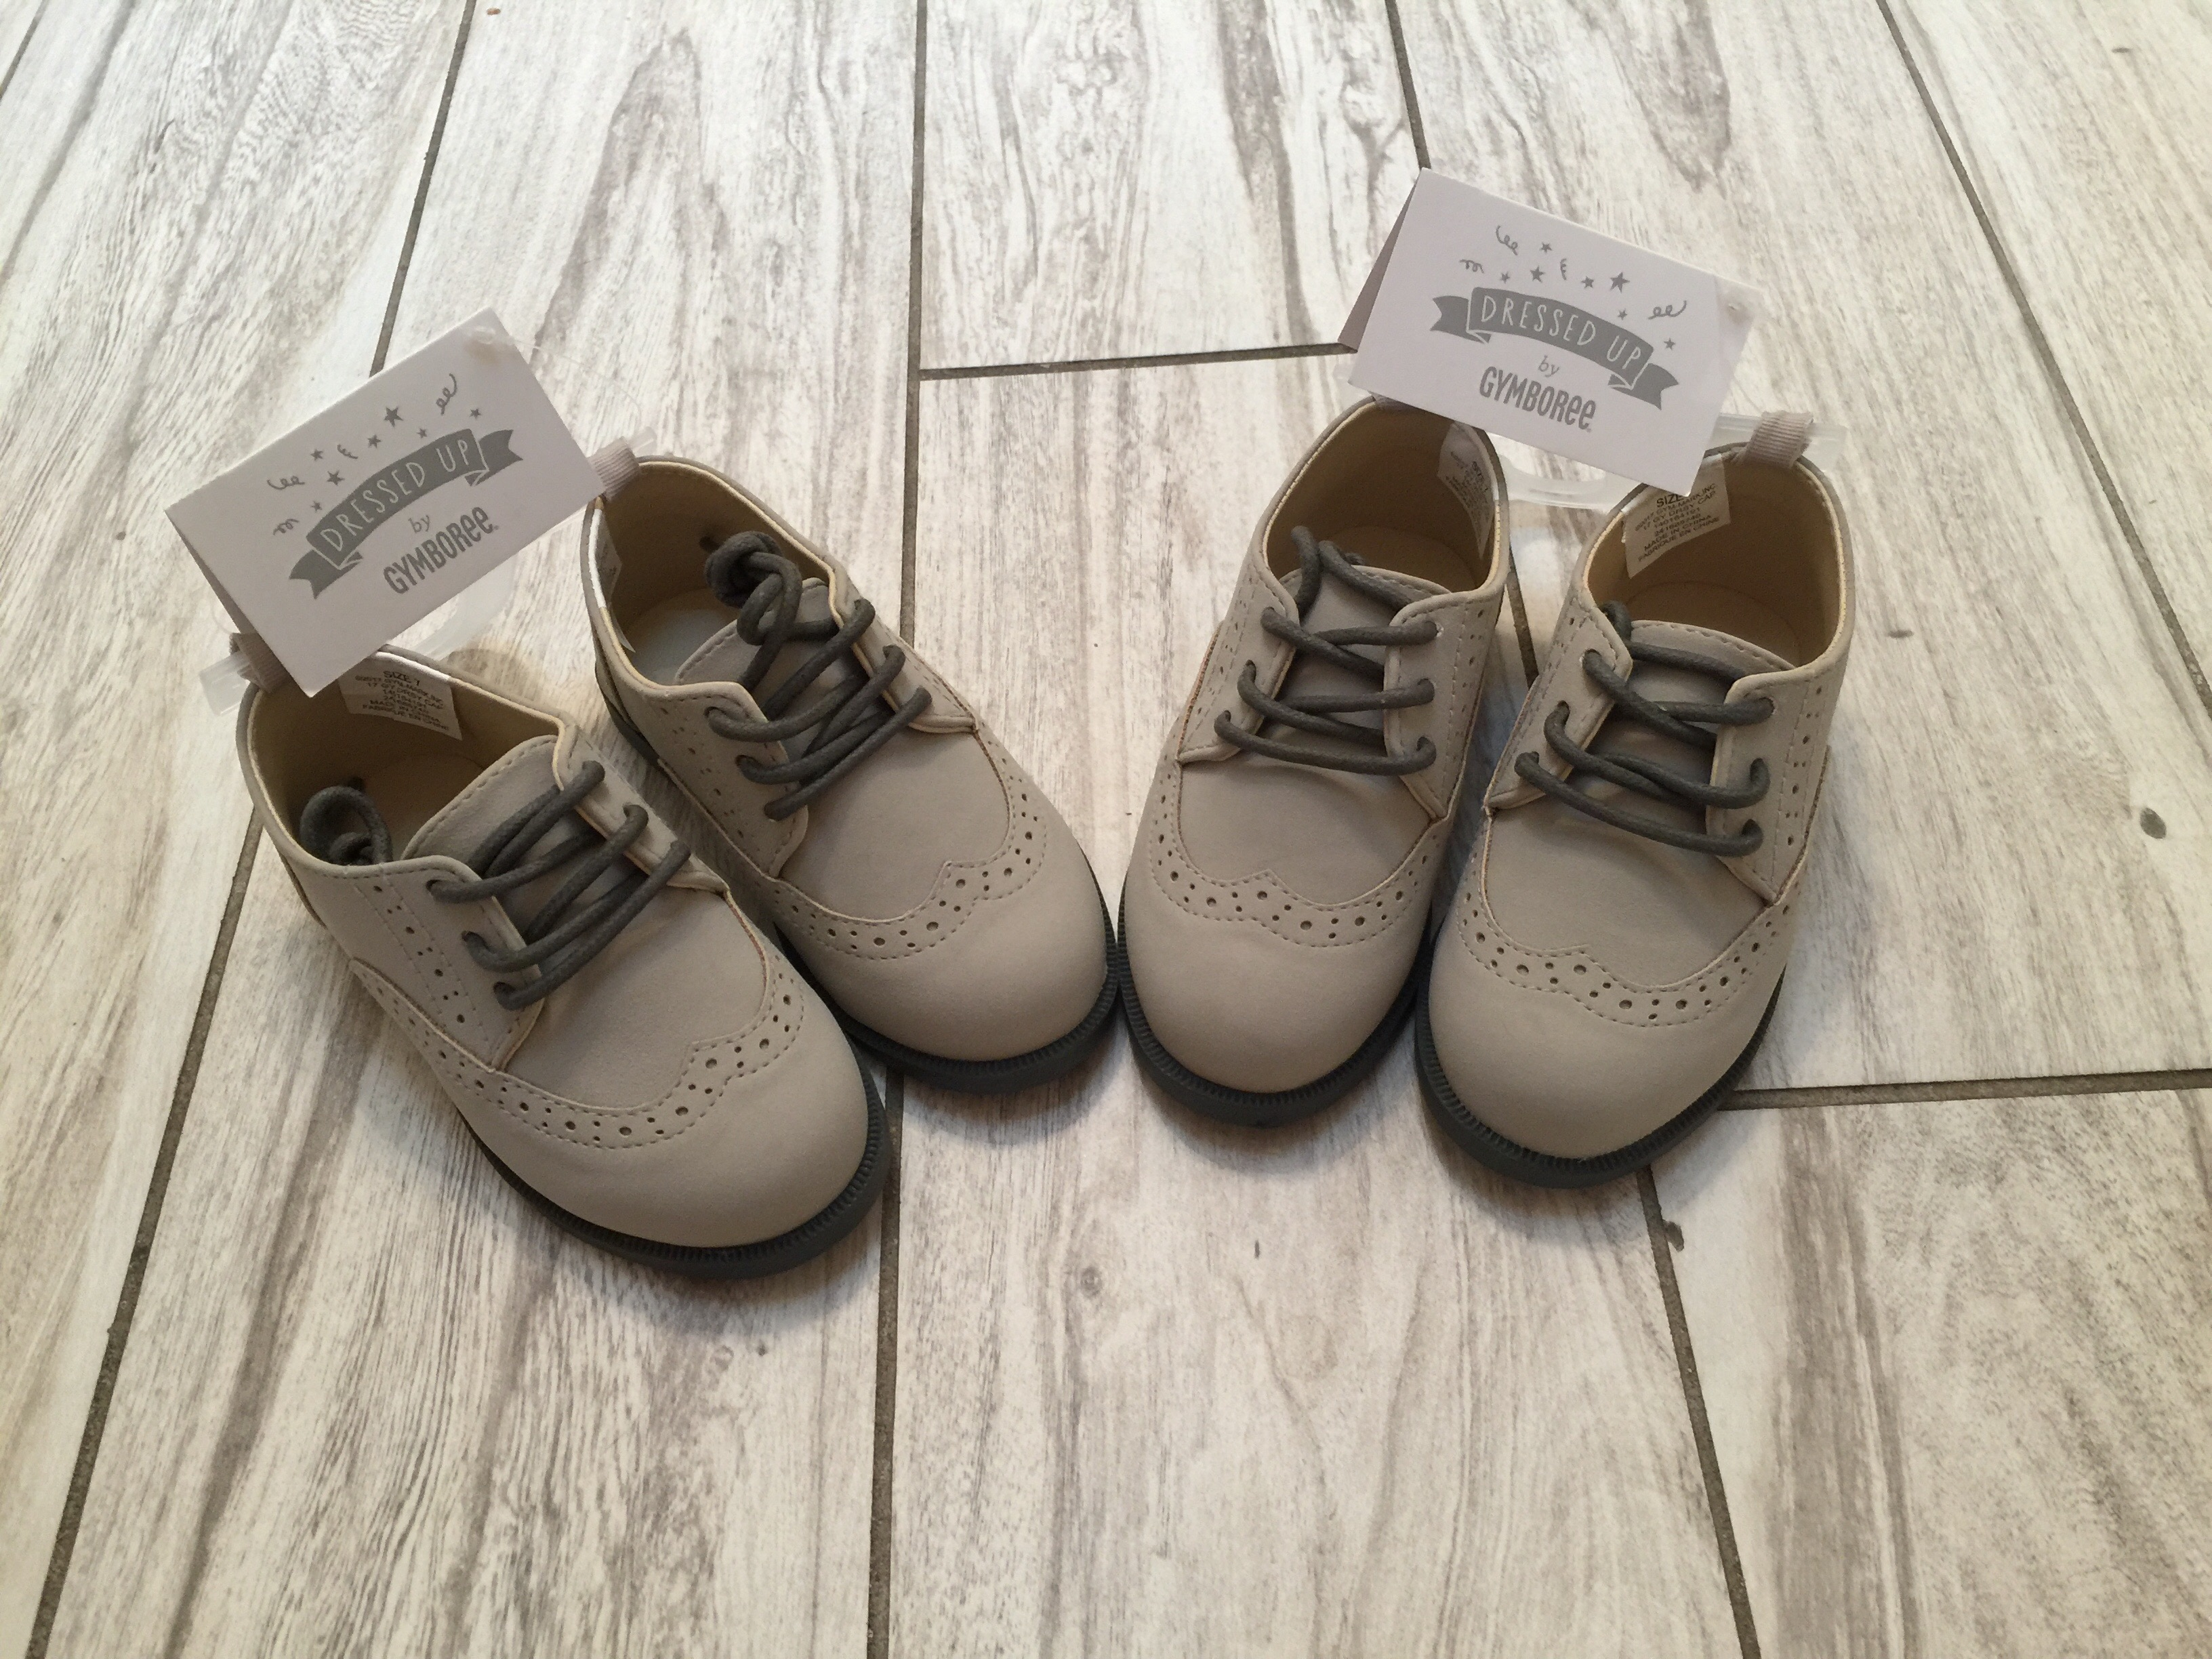 0363a98b982f Size 7 Toddler Dress Shoes NWT - Twin Baby Bargains